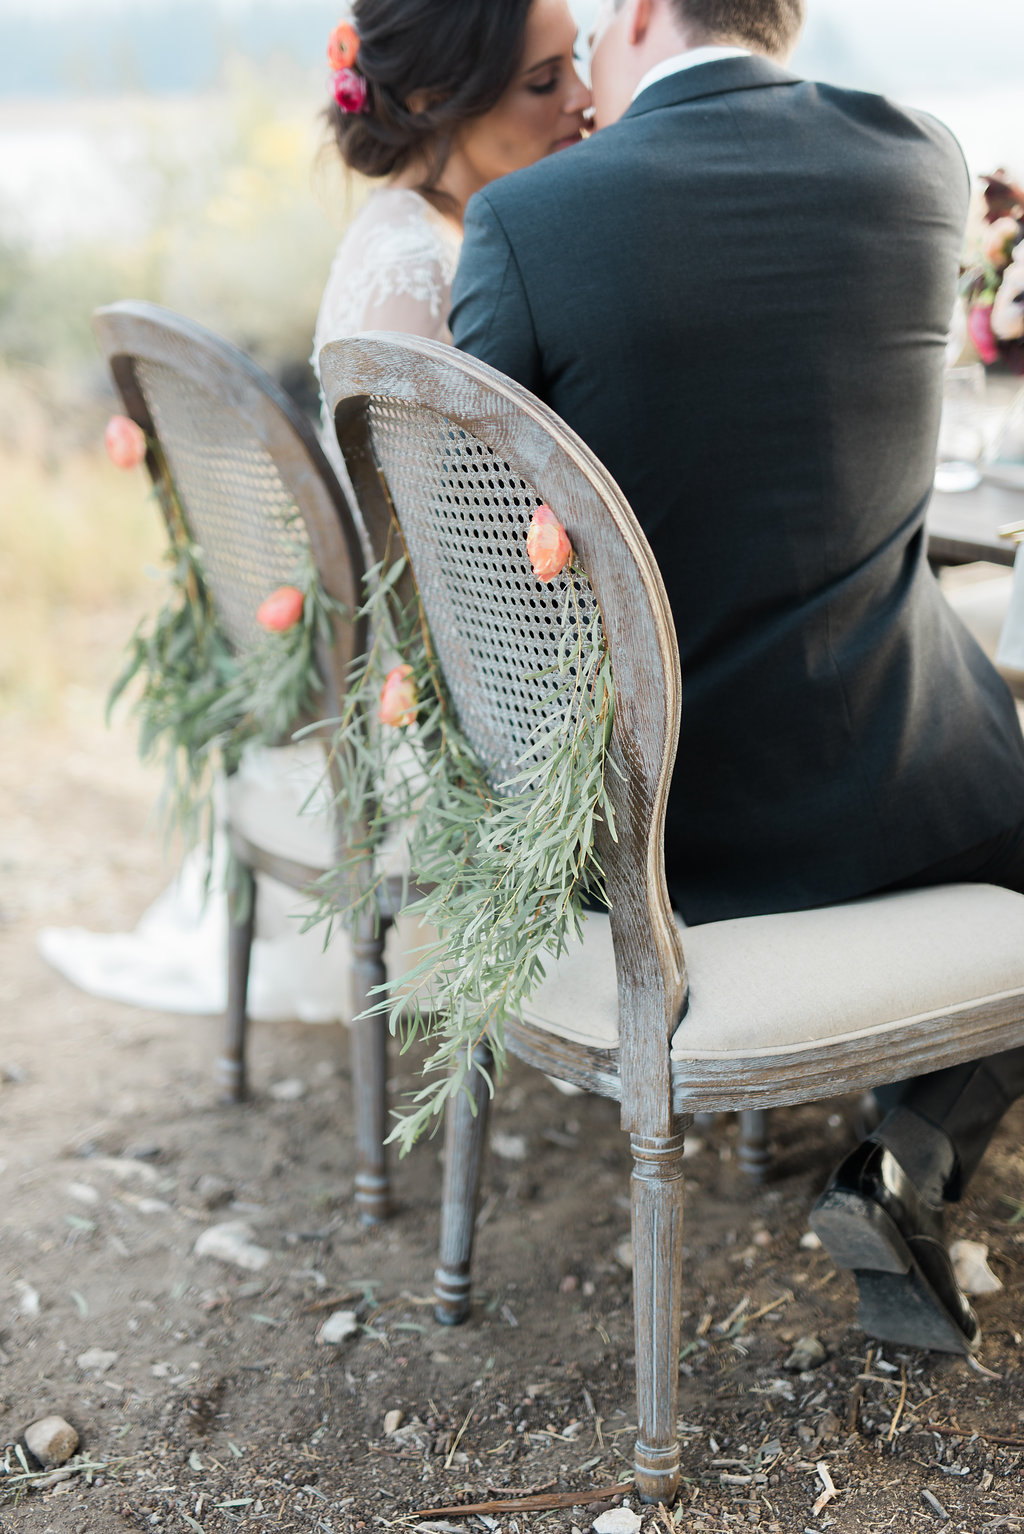 Big Bear Lakeside California Wedding | Shotgunning for Love Letters - Chairs with Garland